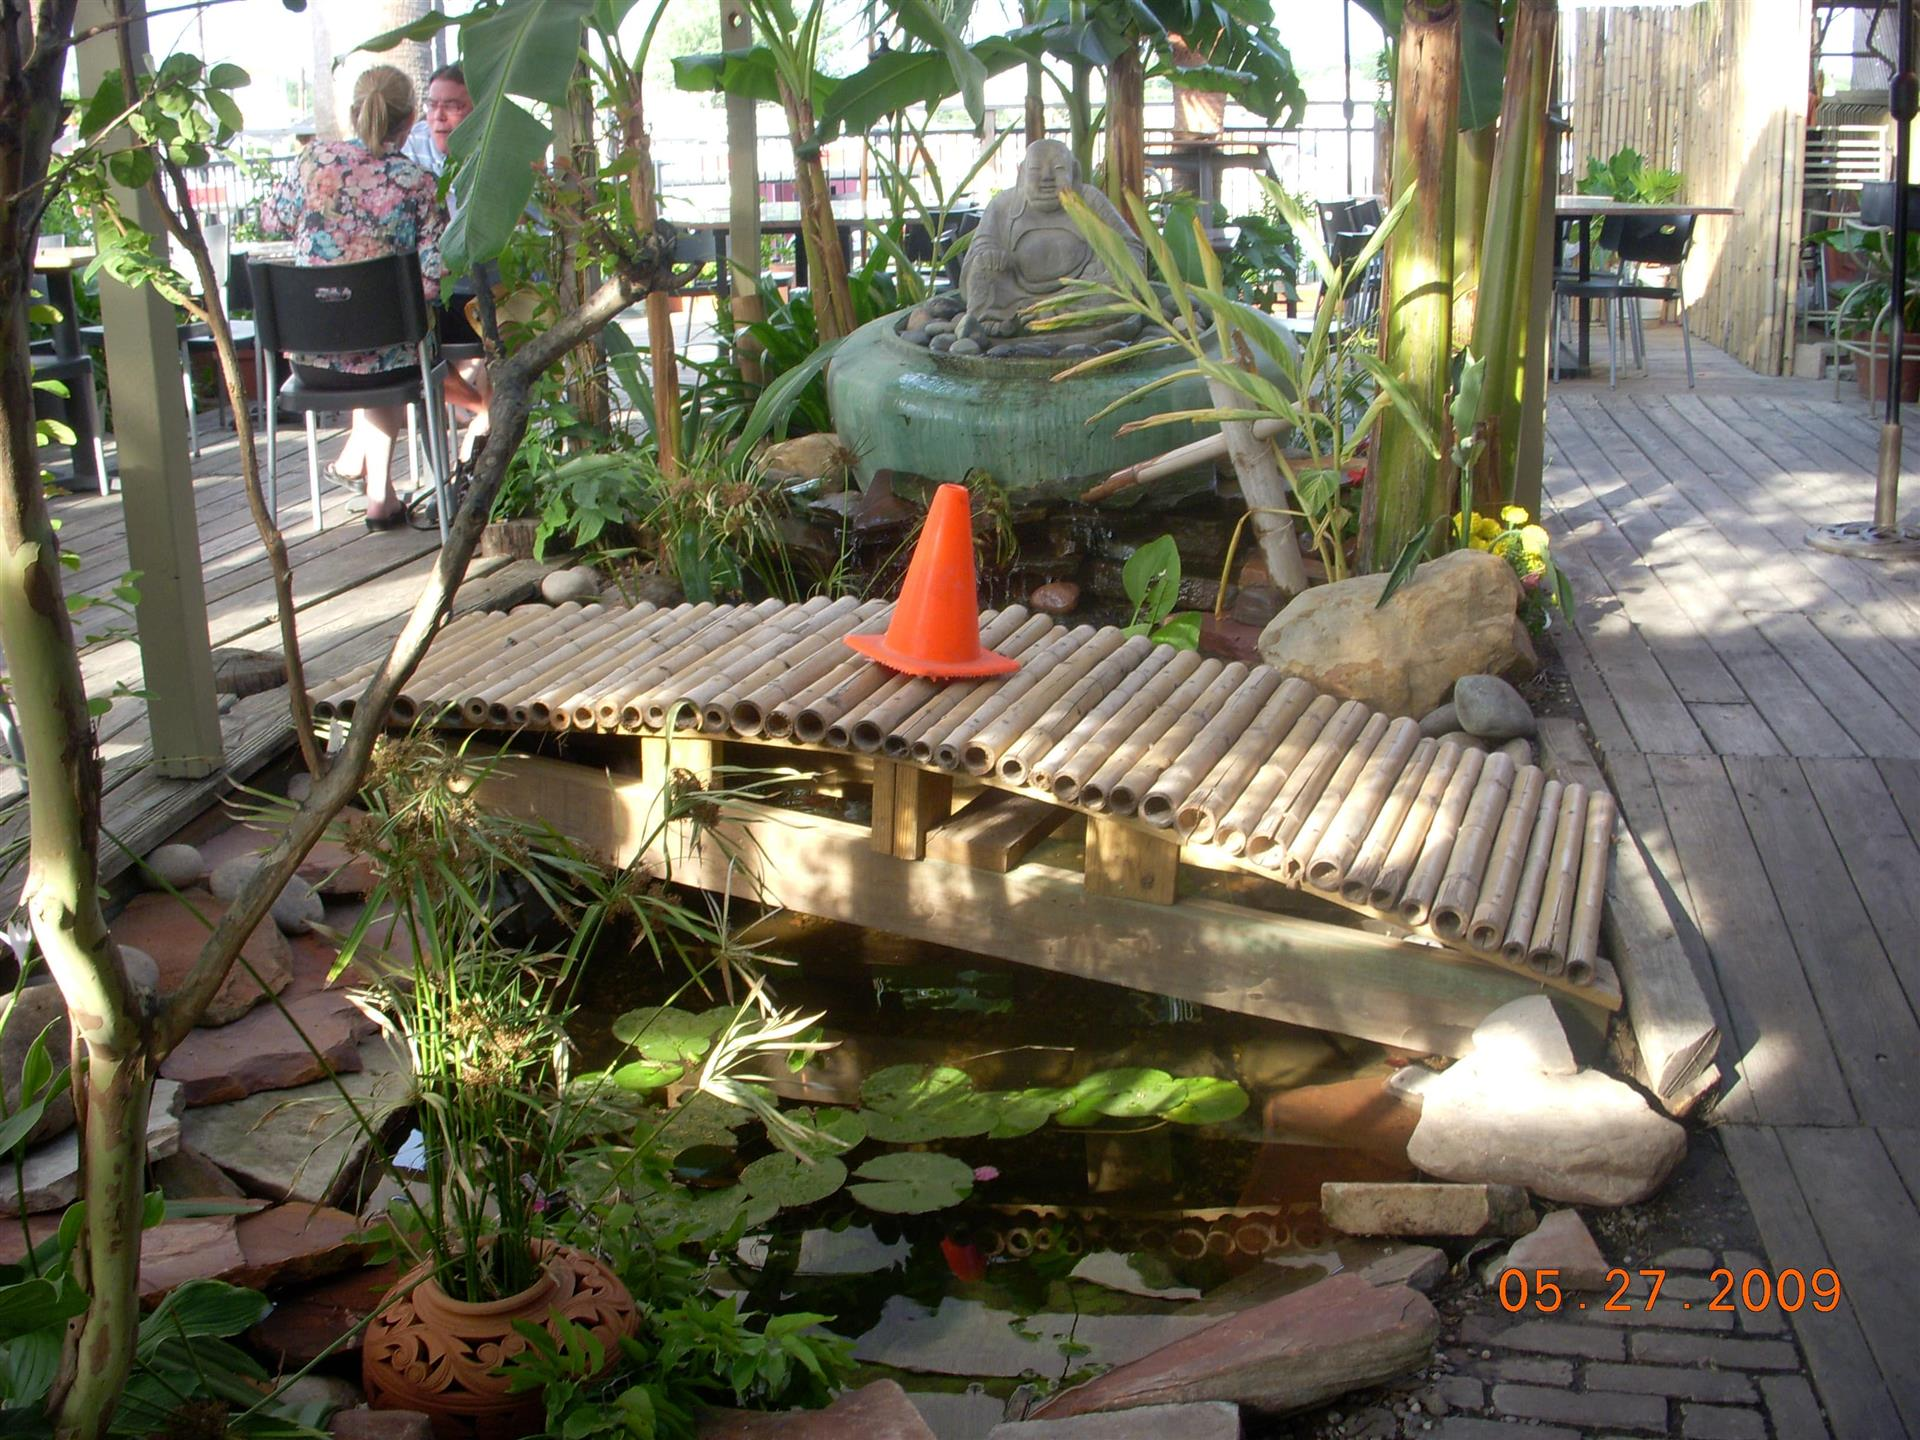 Outdoor deck with small bamboo bridge with orange cone in the middle